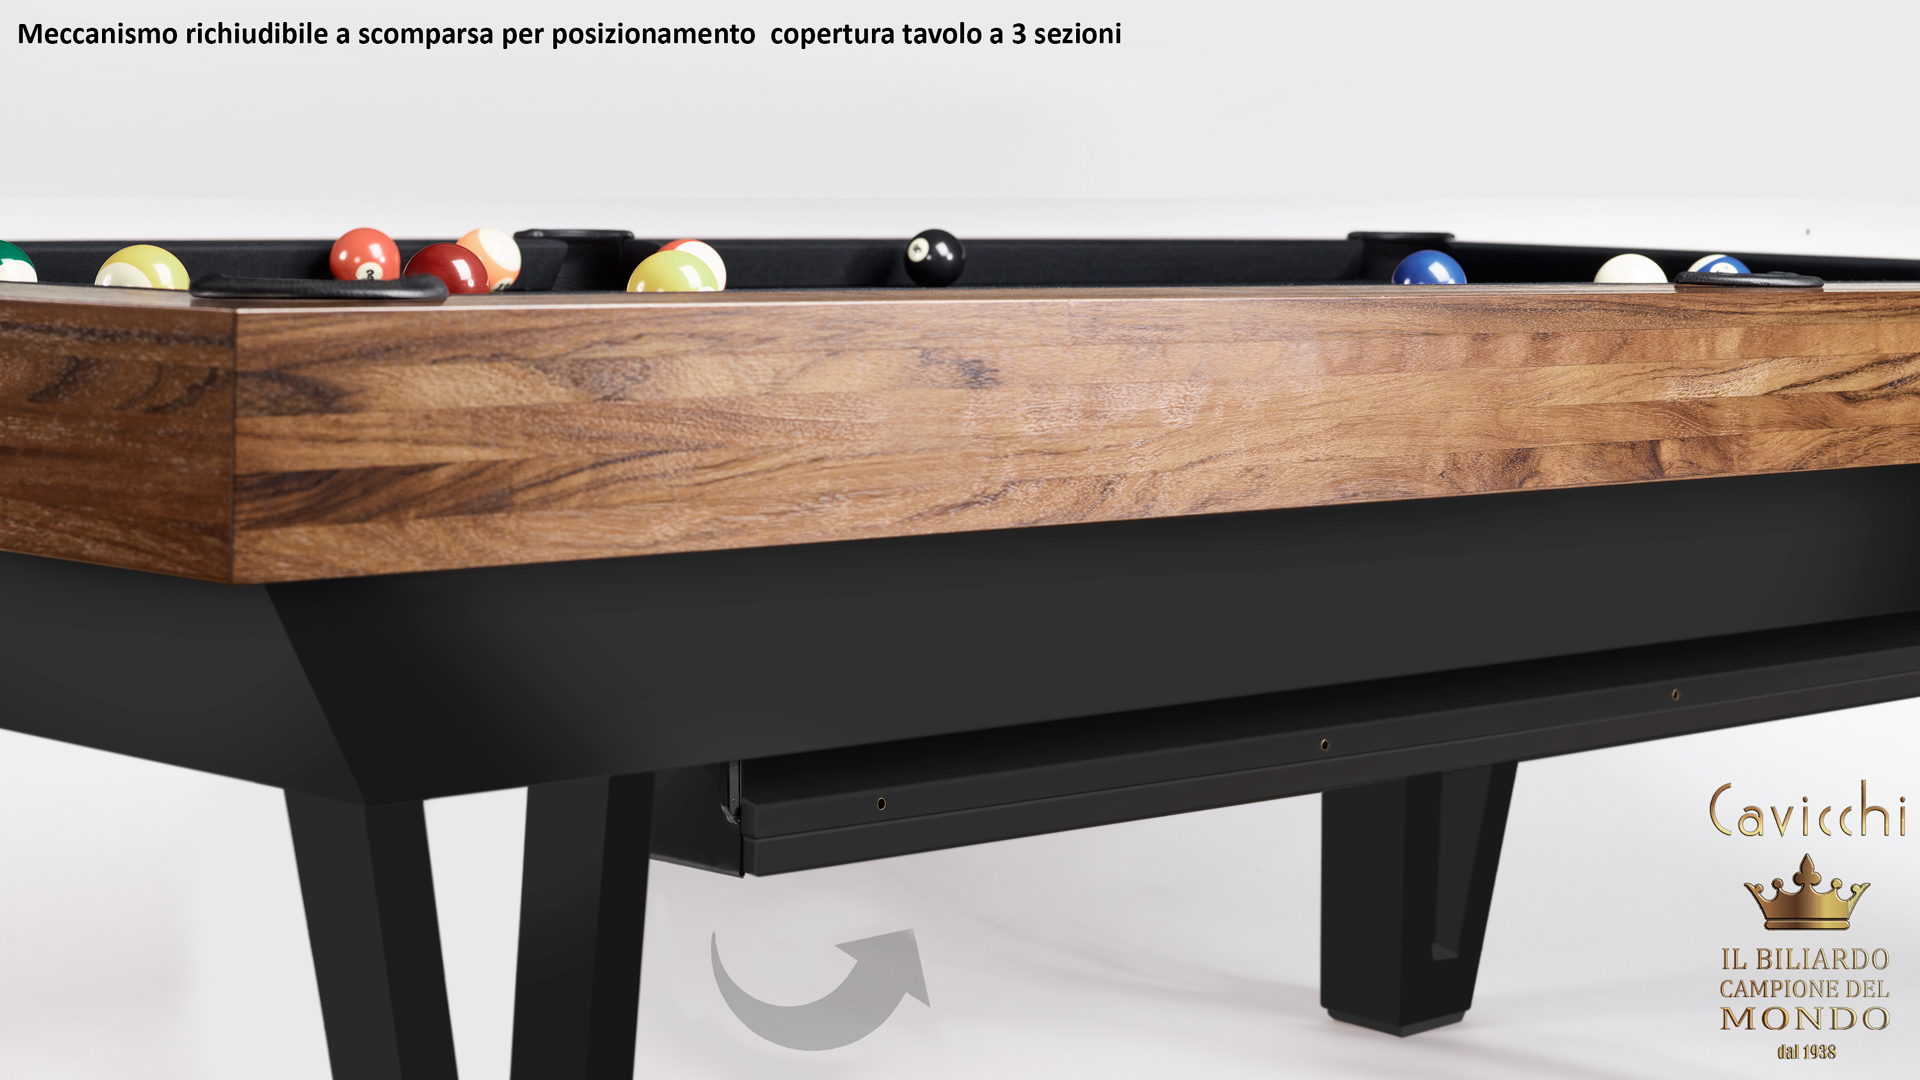 billiard table Cavicchi Cayenne Two Bicolor  - Showroom Shop 11